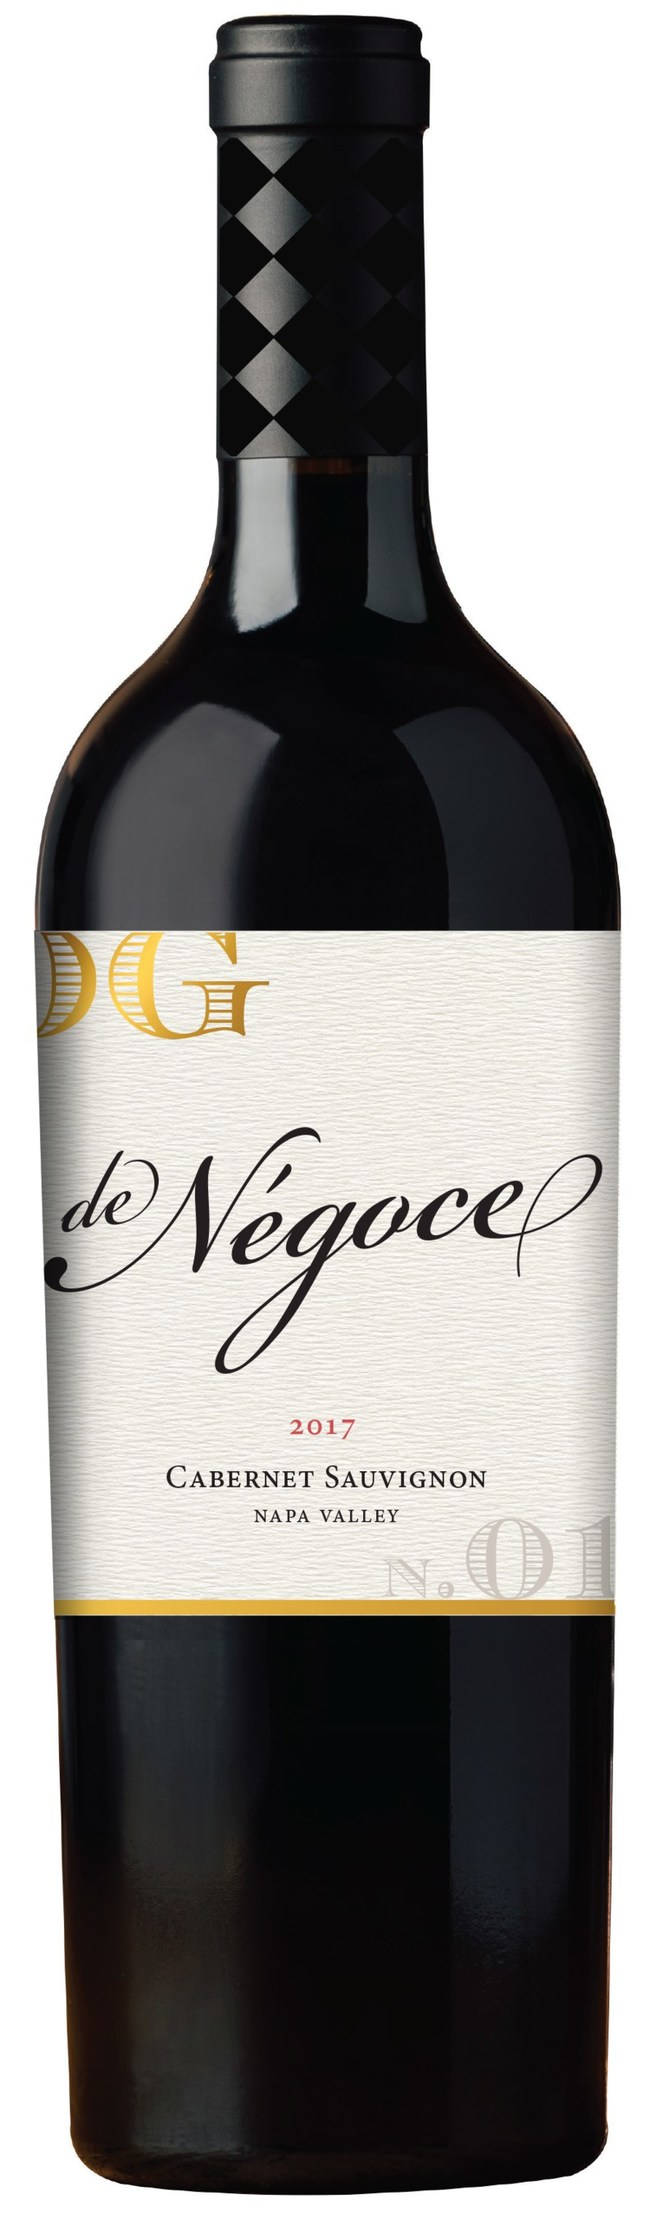 The new de Negoce package